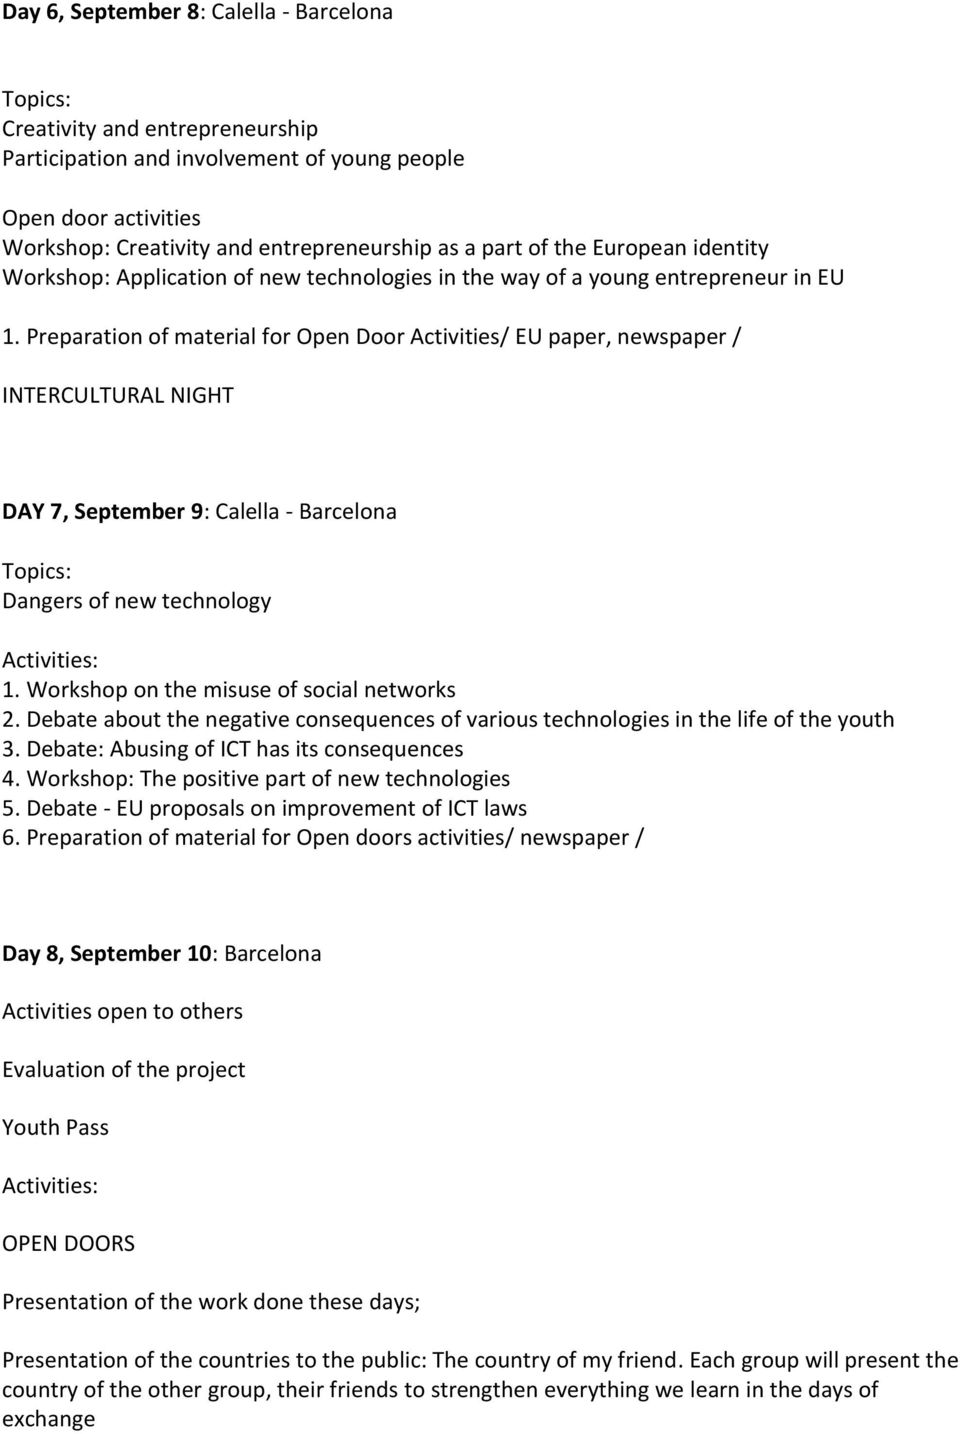 Preparation of material for Open Door Activities/ EU paper, newspaper / INTERCULTURAL NIGHT DAY 7, September 9: Calella - Barcelona Topics: Dangers of new technology Activities: 1.